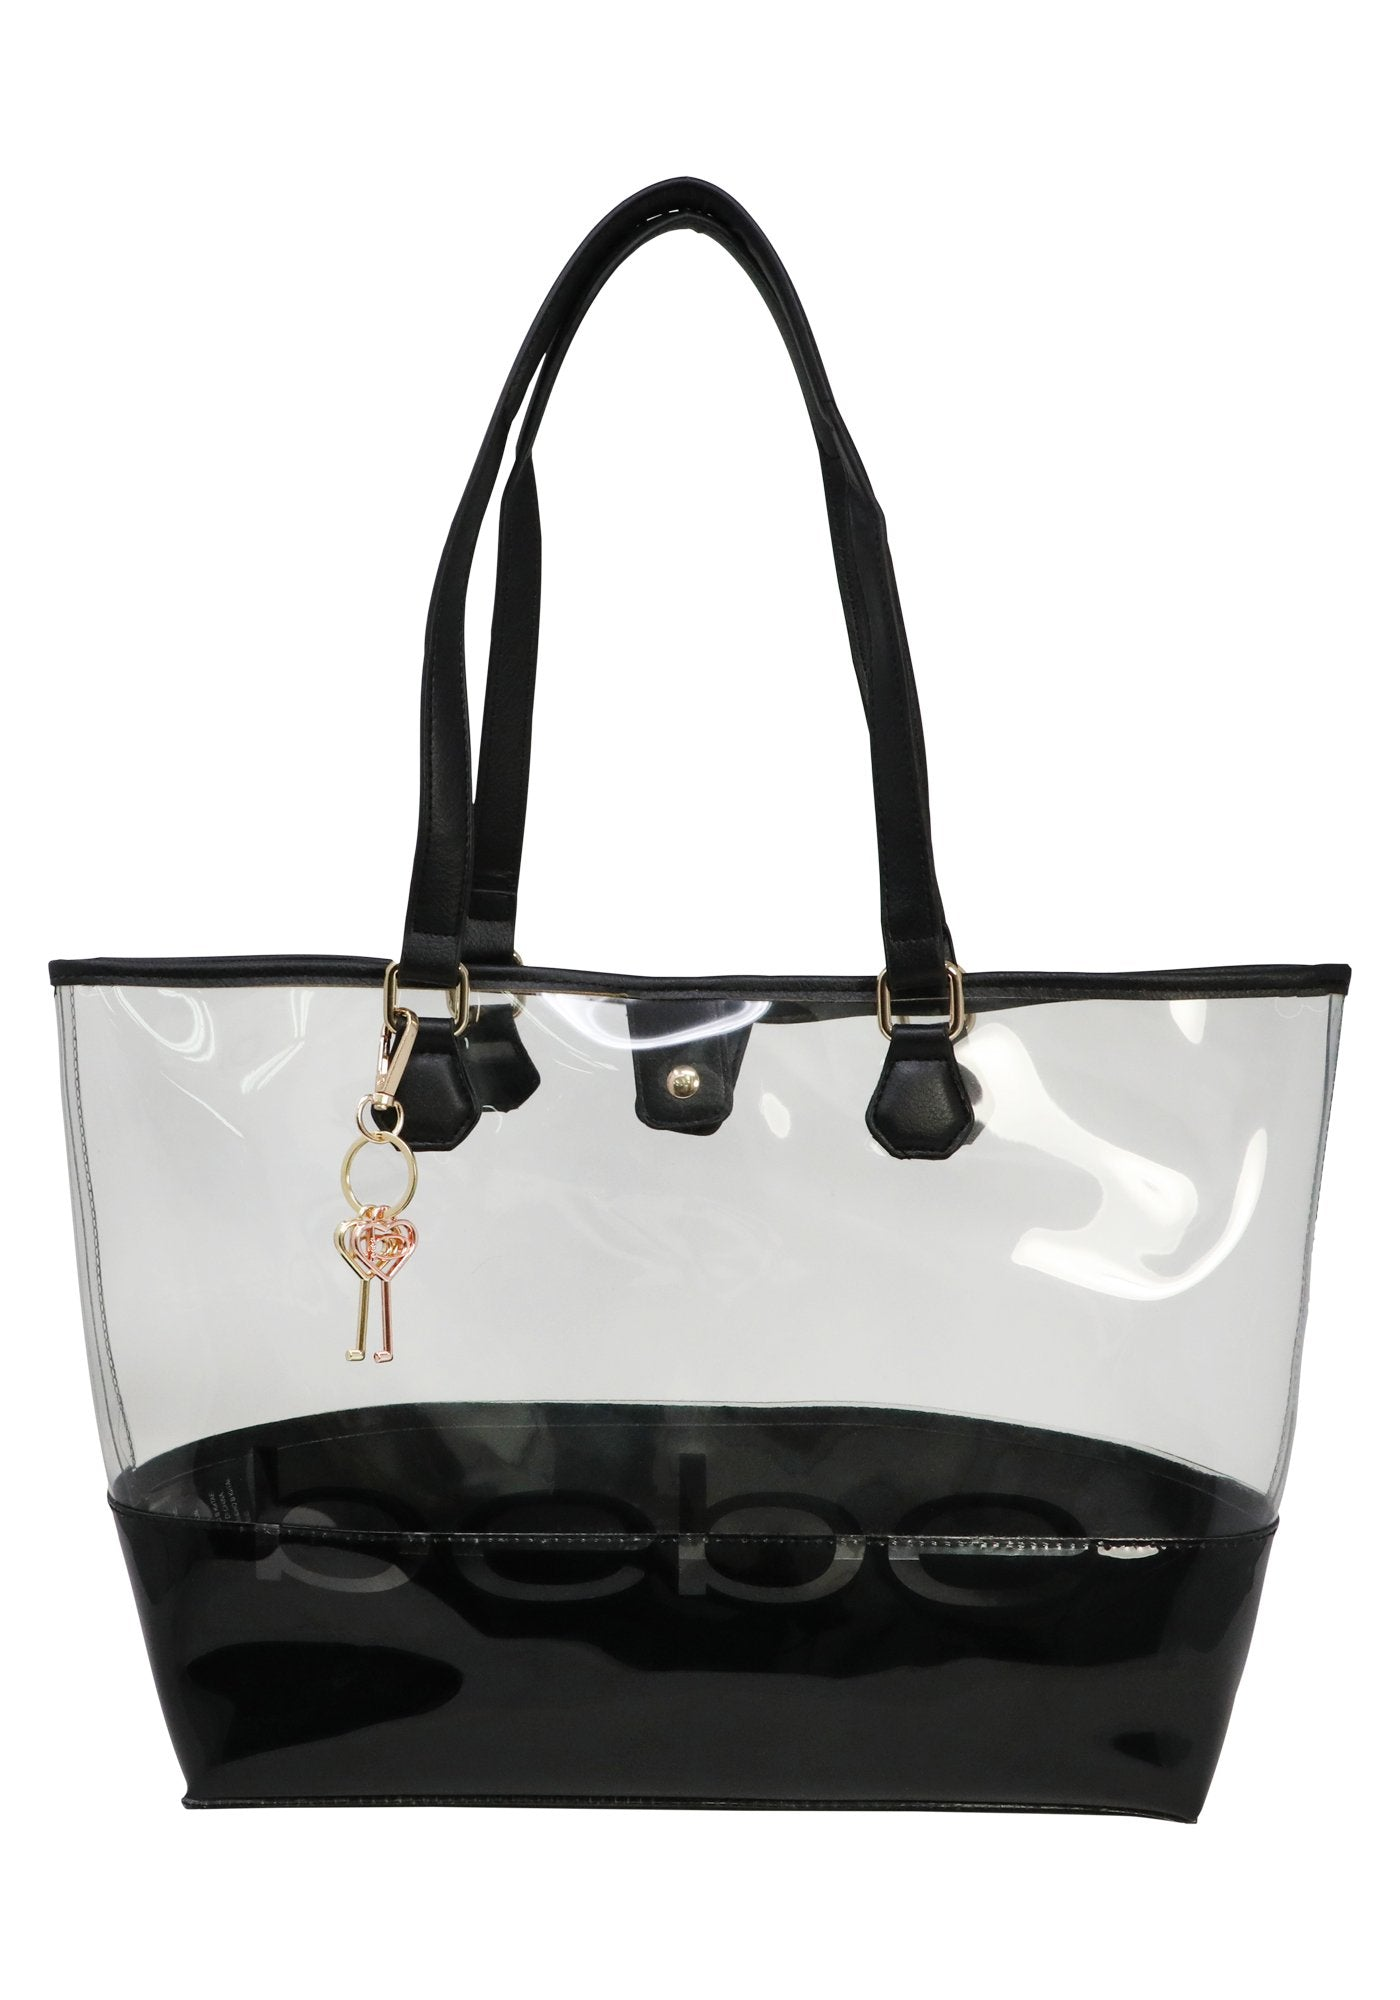 Bebe Women's Lindsey Clear Tote Bag, Size X-Large in Black